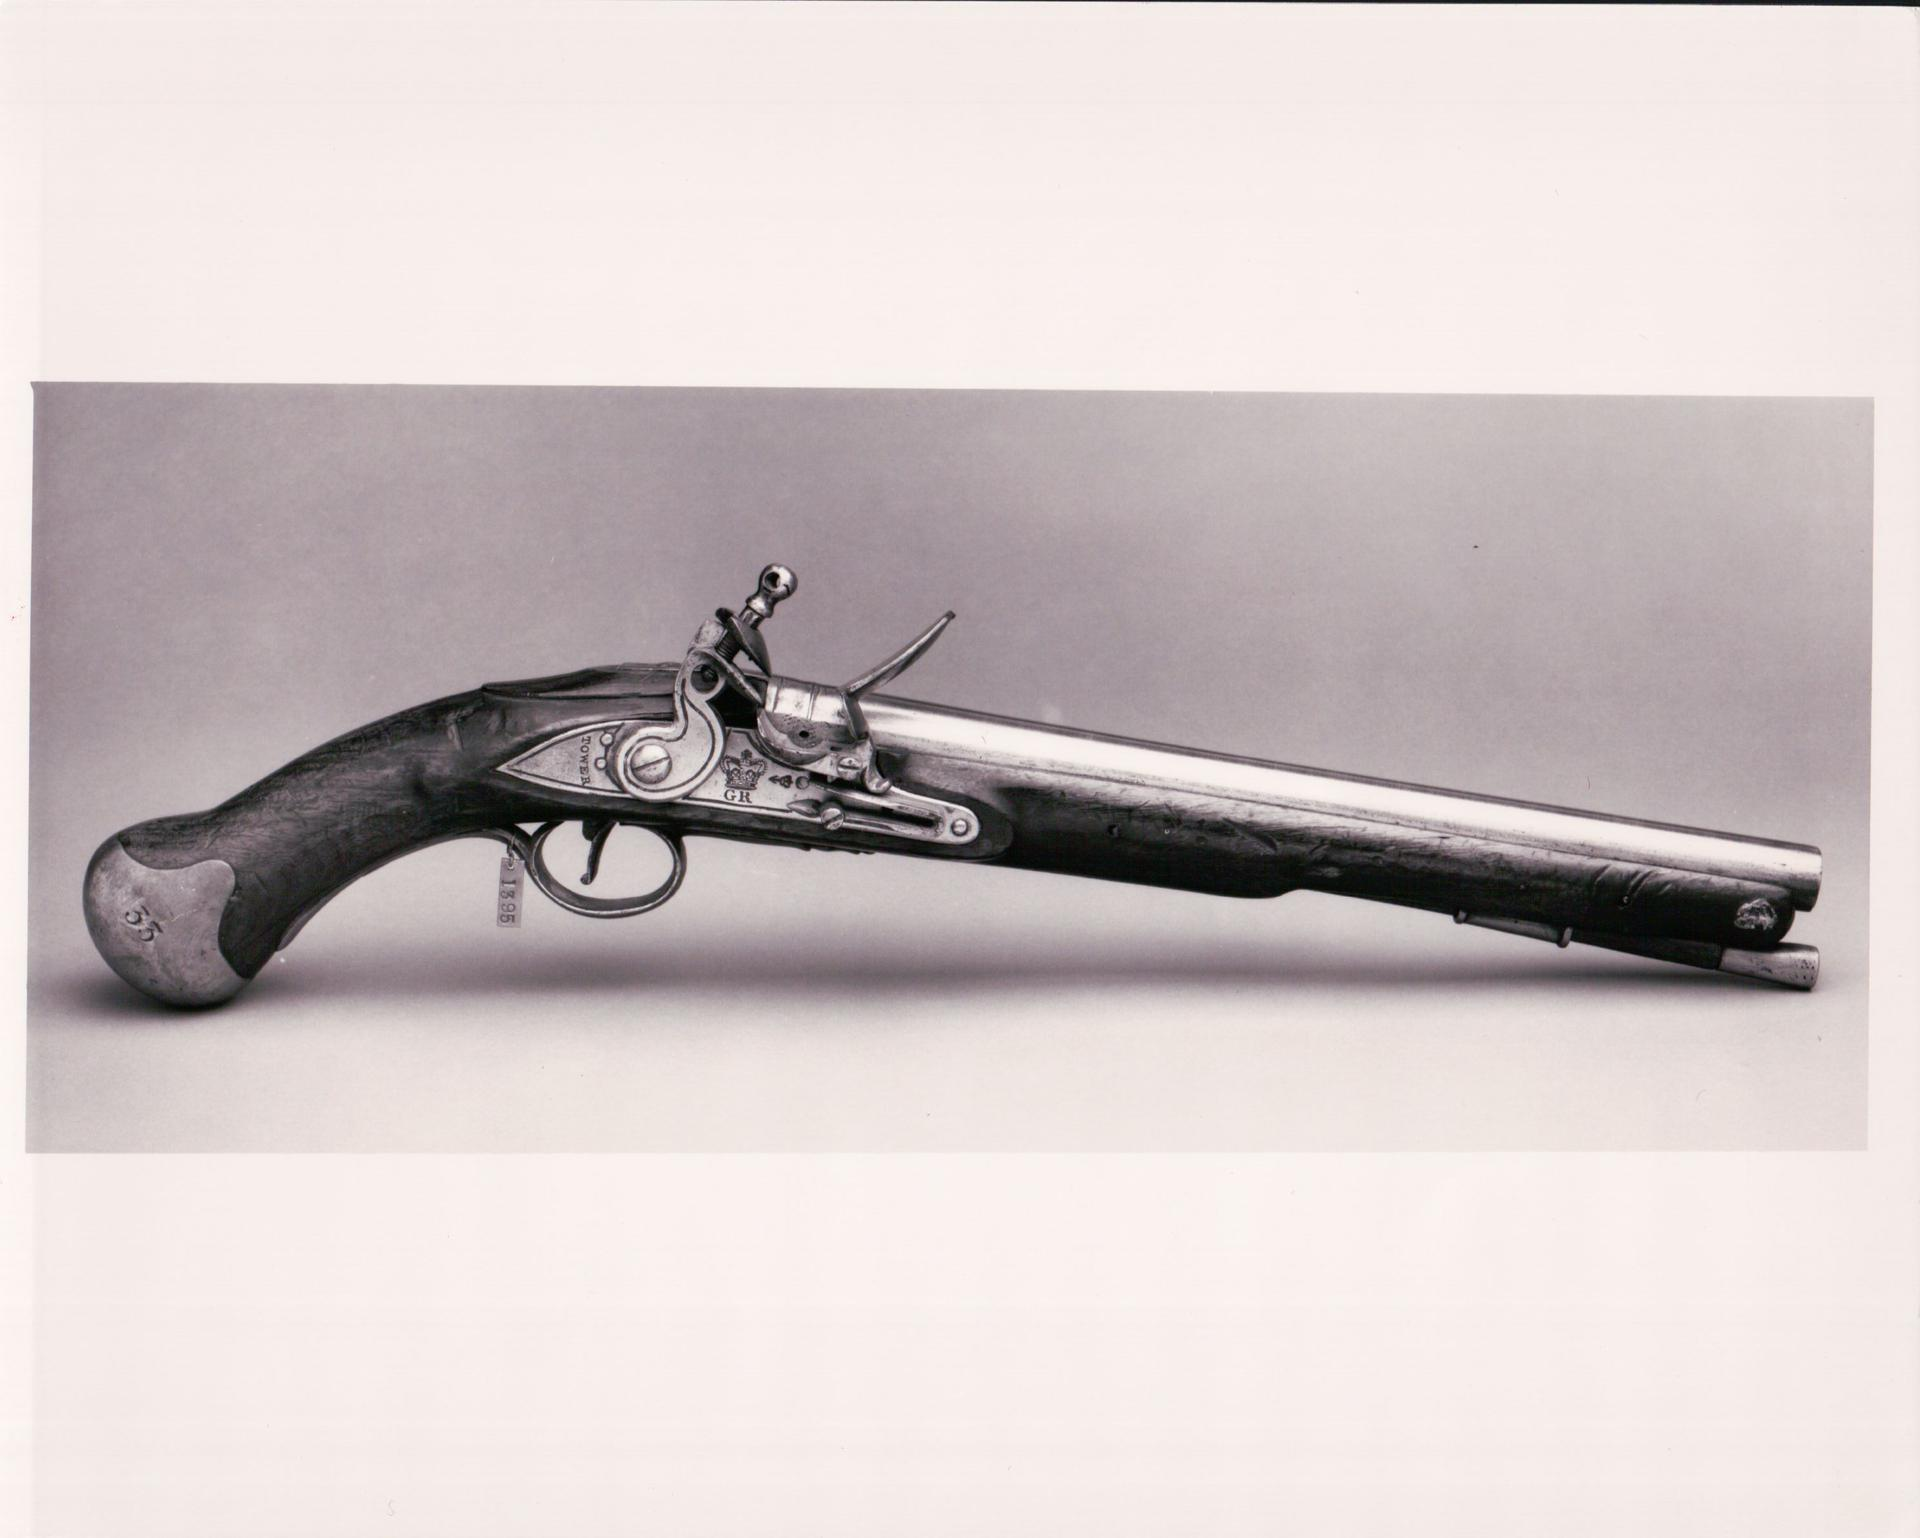 Flintlock military pistol - Sea Service Pattern